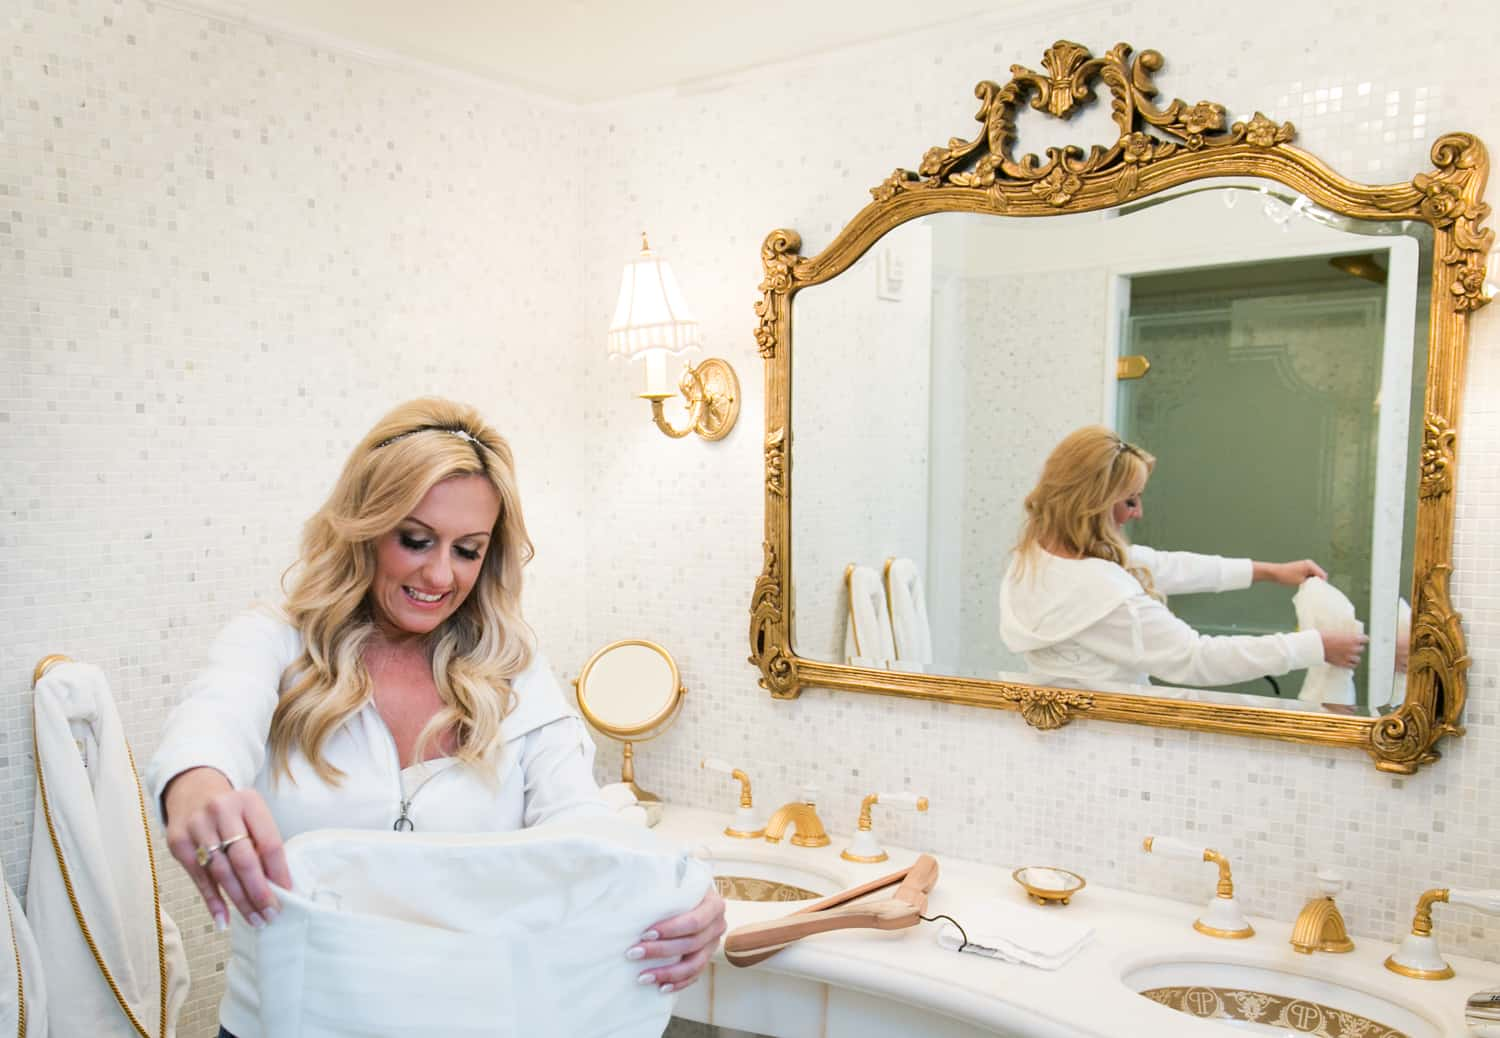 Bride looking at wedding dress in bathroom